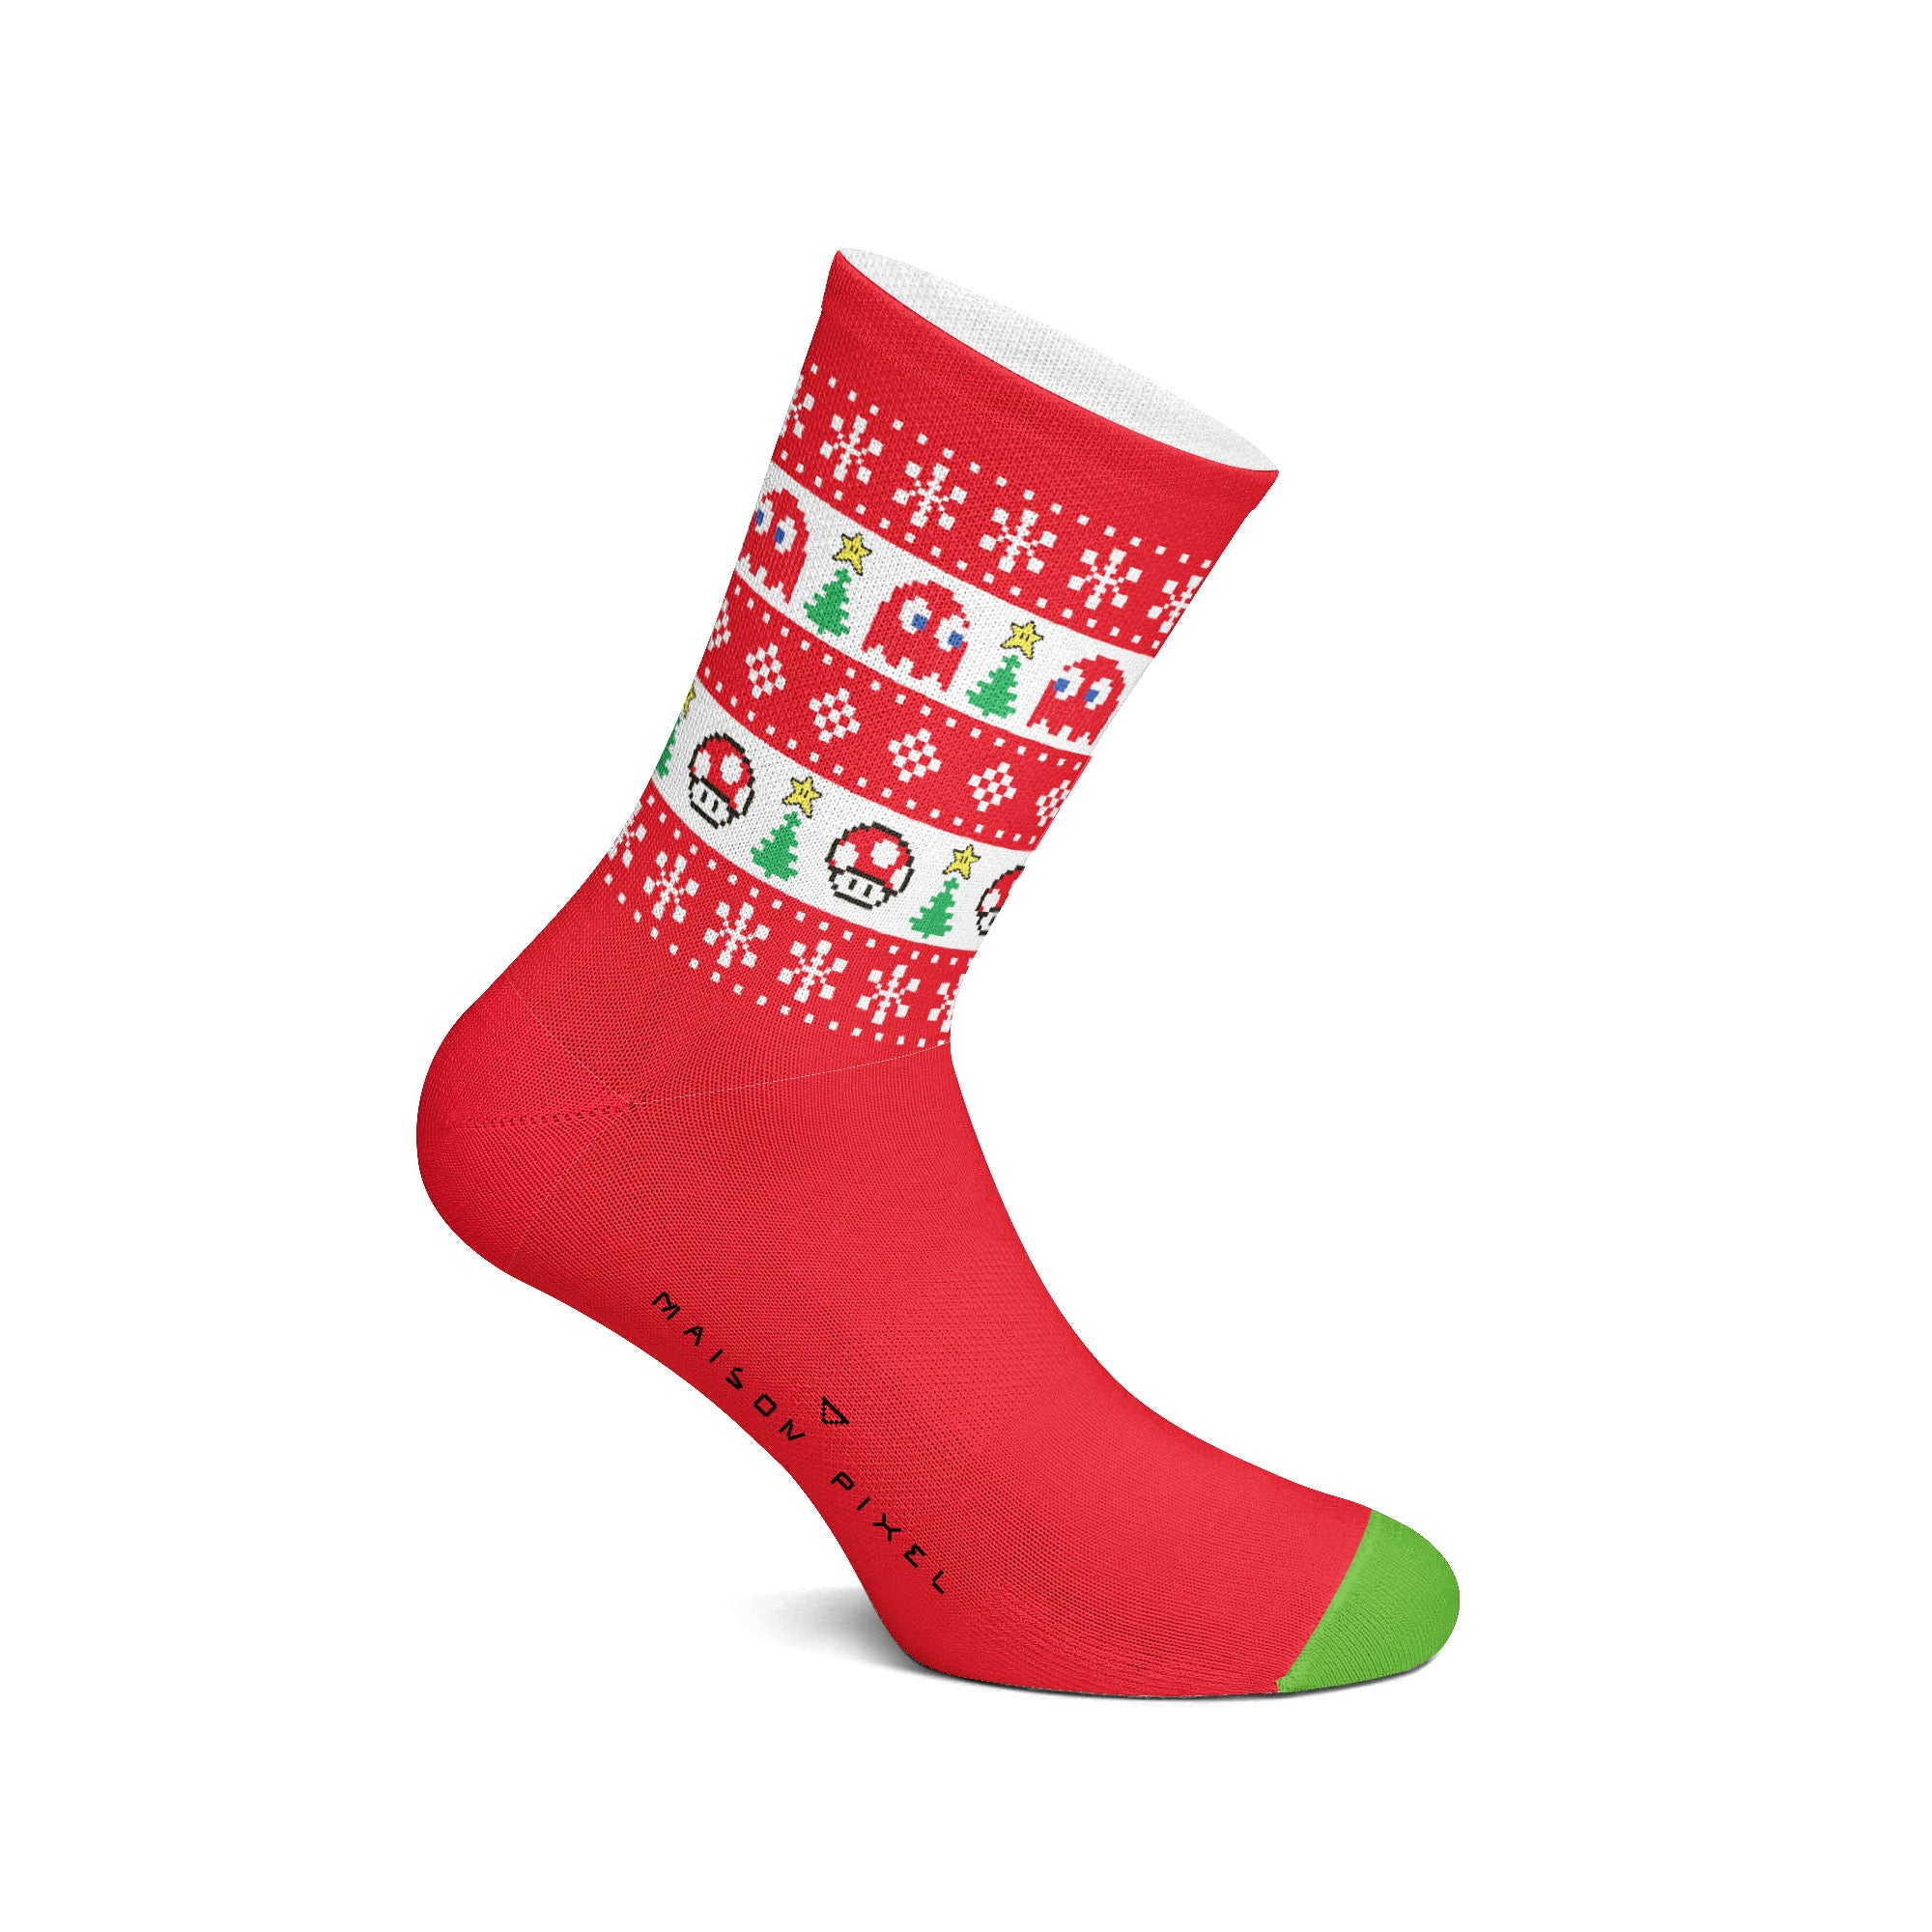 Pixel Socks Xmas time is here